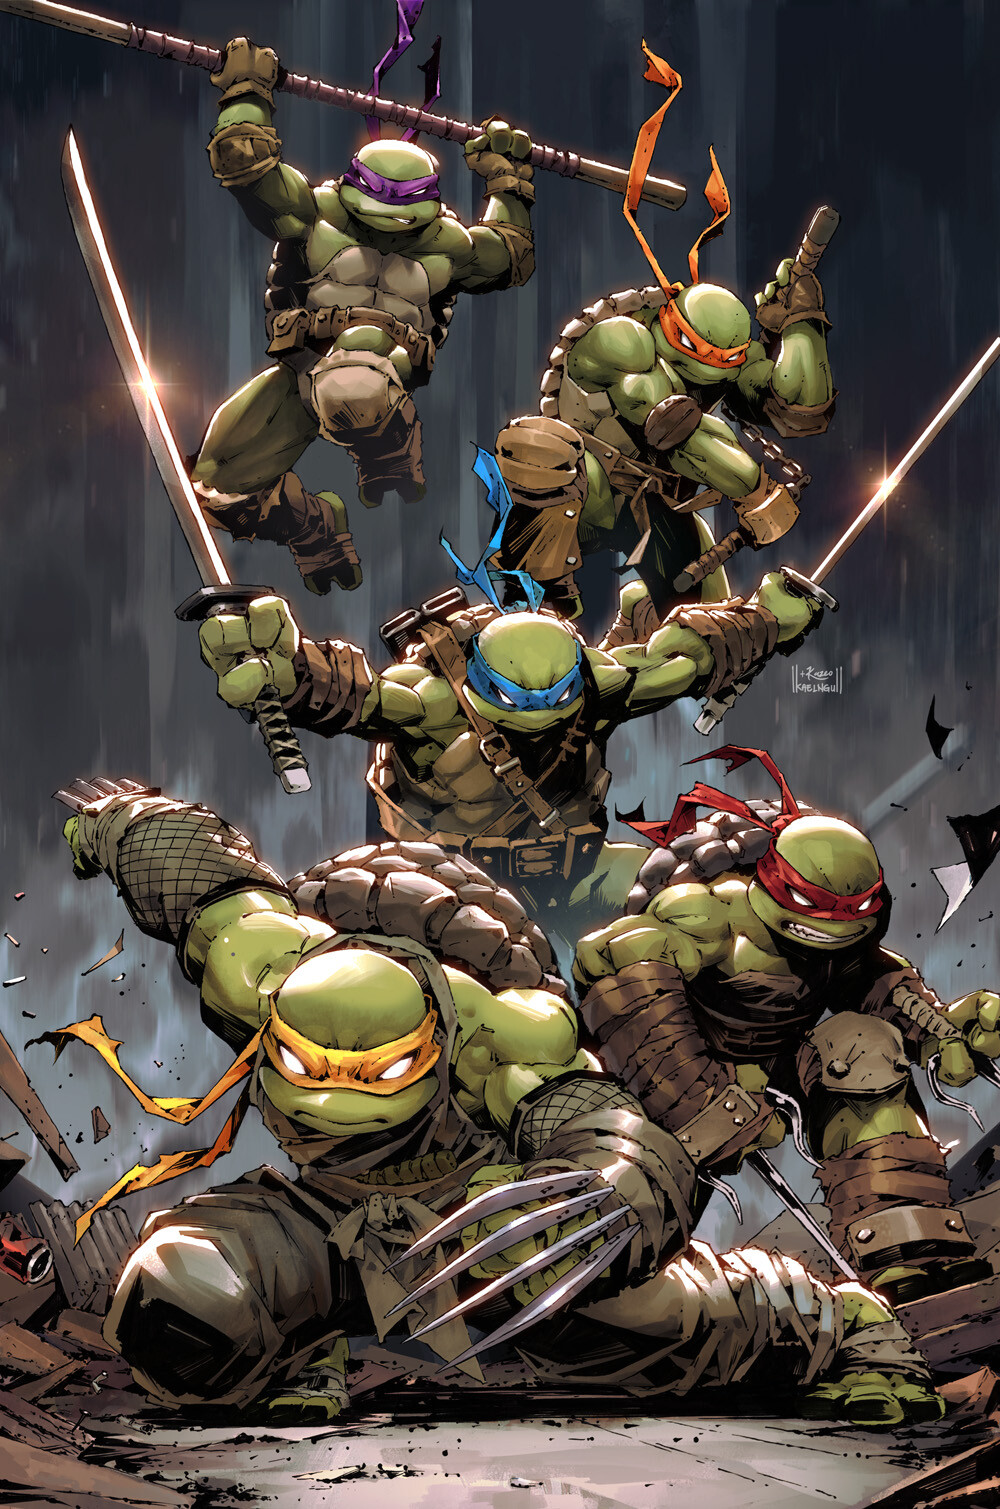 Teenage Mutant Ninja Turtle #99